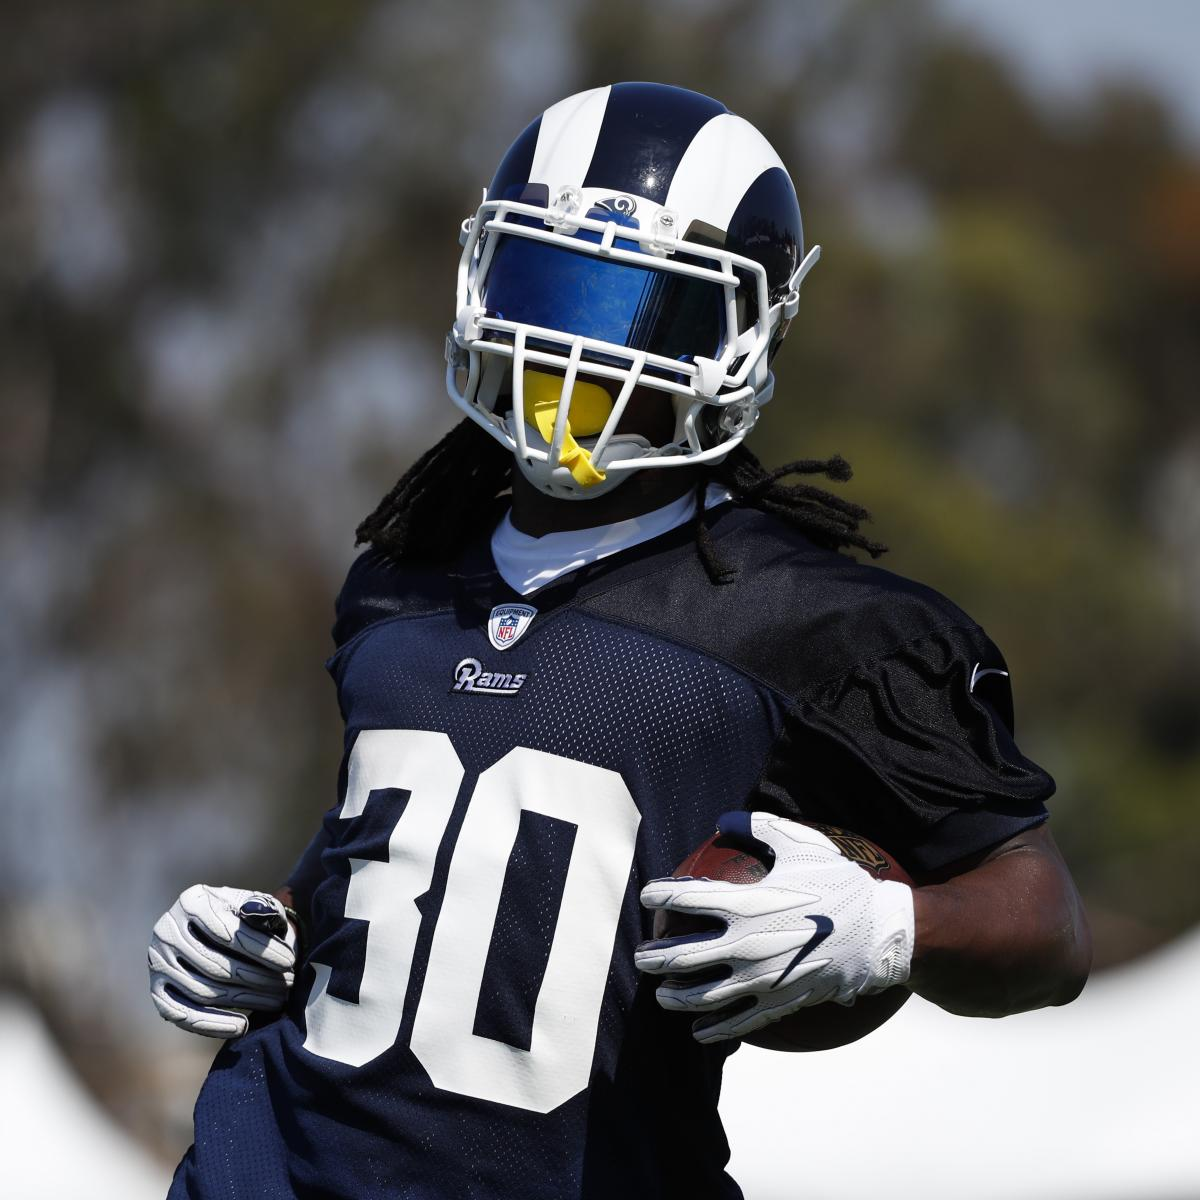 Fantasy Football 2018 Todd Gurley And Safest Players To Draft No 1 Bleacher Report Latest News Videos And Highlights